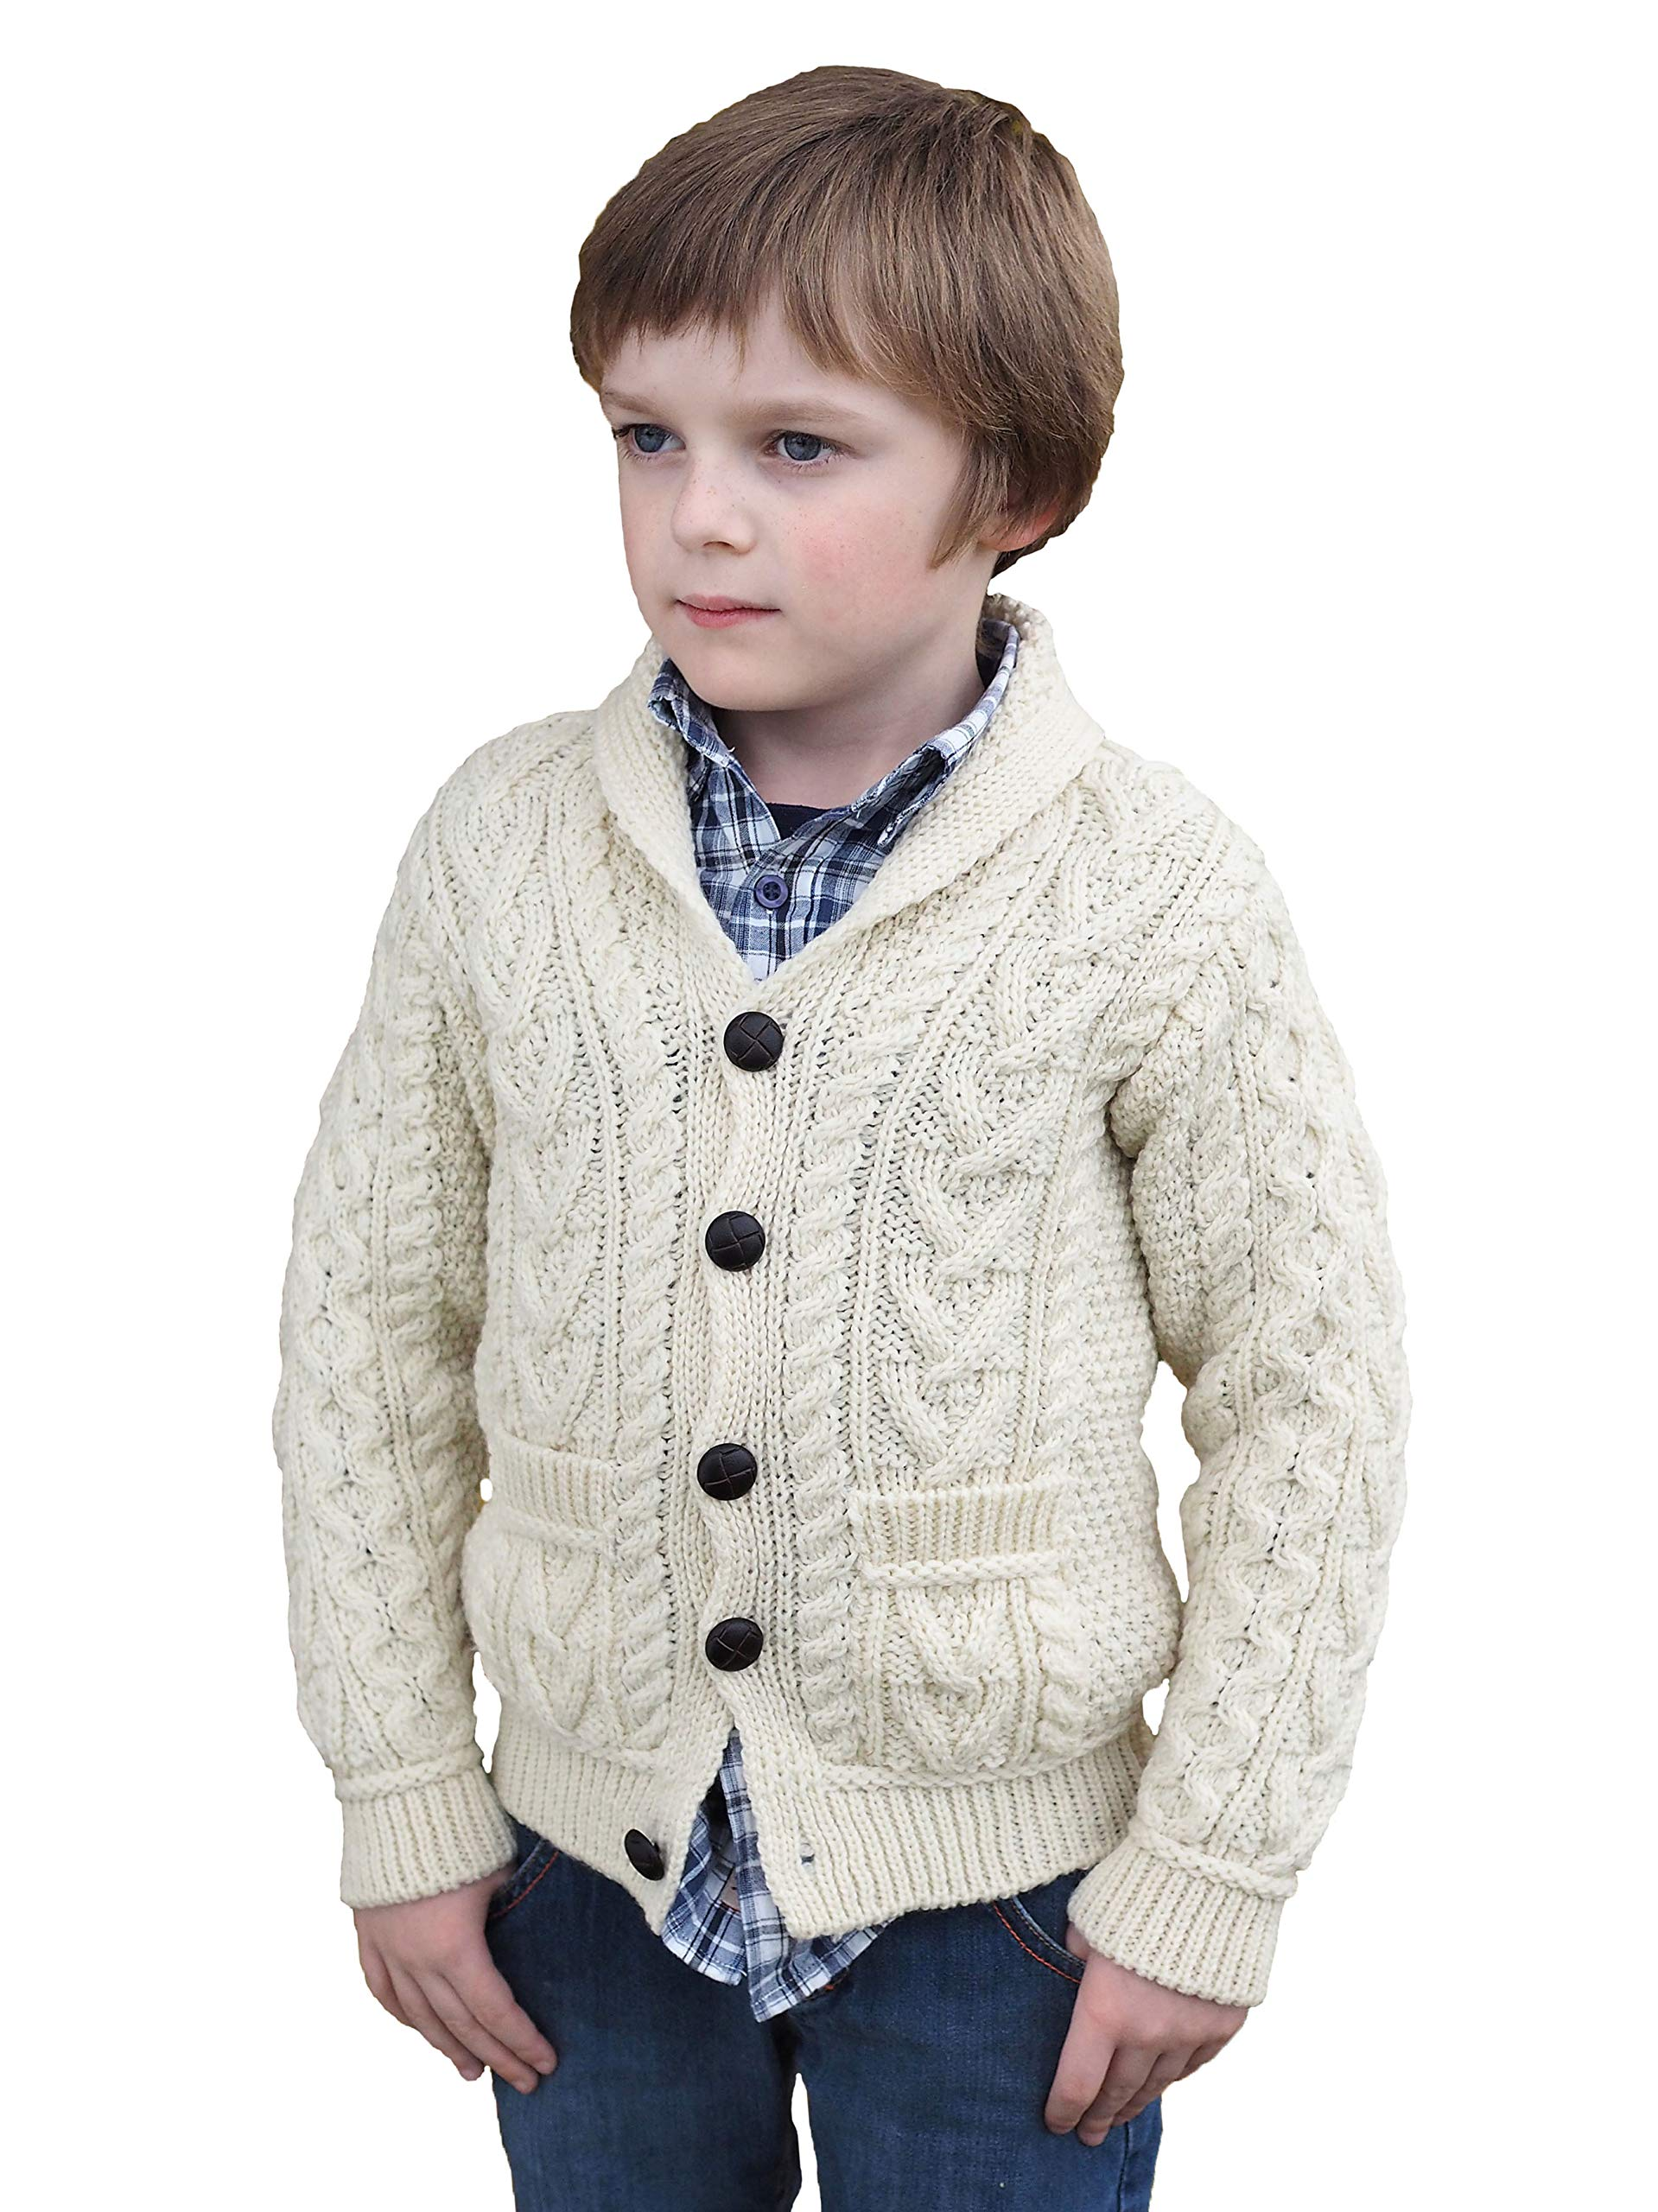 Aran Crafts Child Crew Neck Sweater 100/% Merino Wool